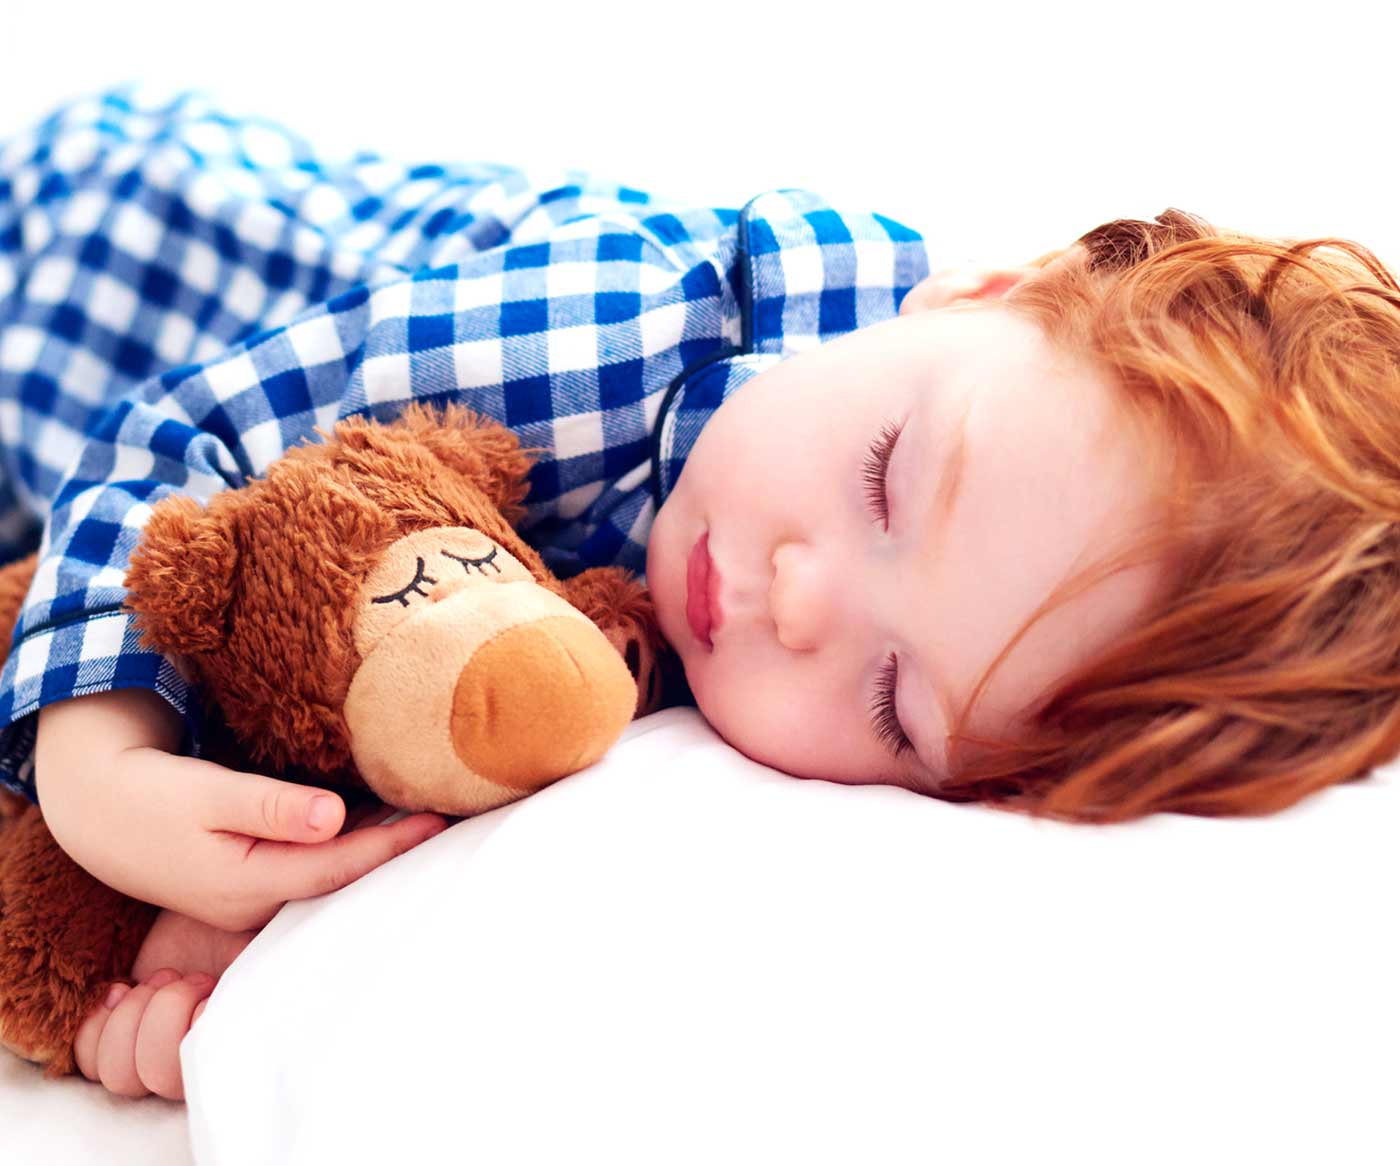 a little boy sleeping with a stuffed animal